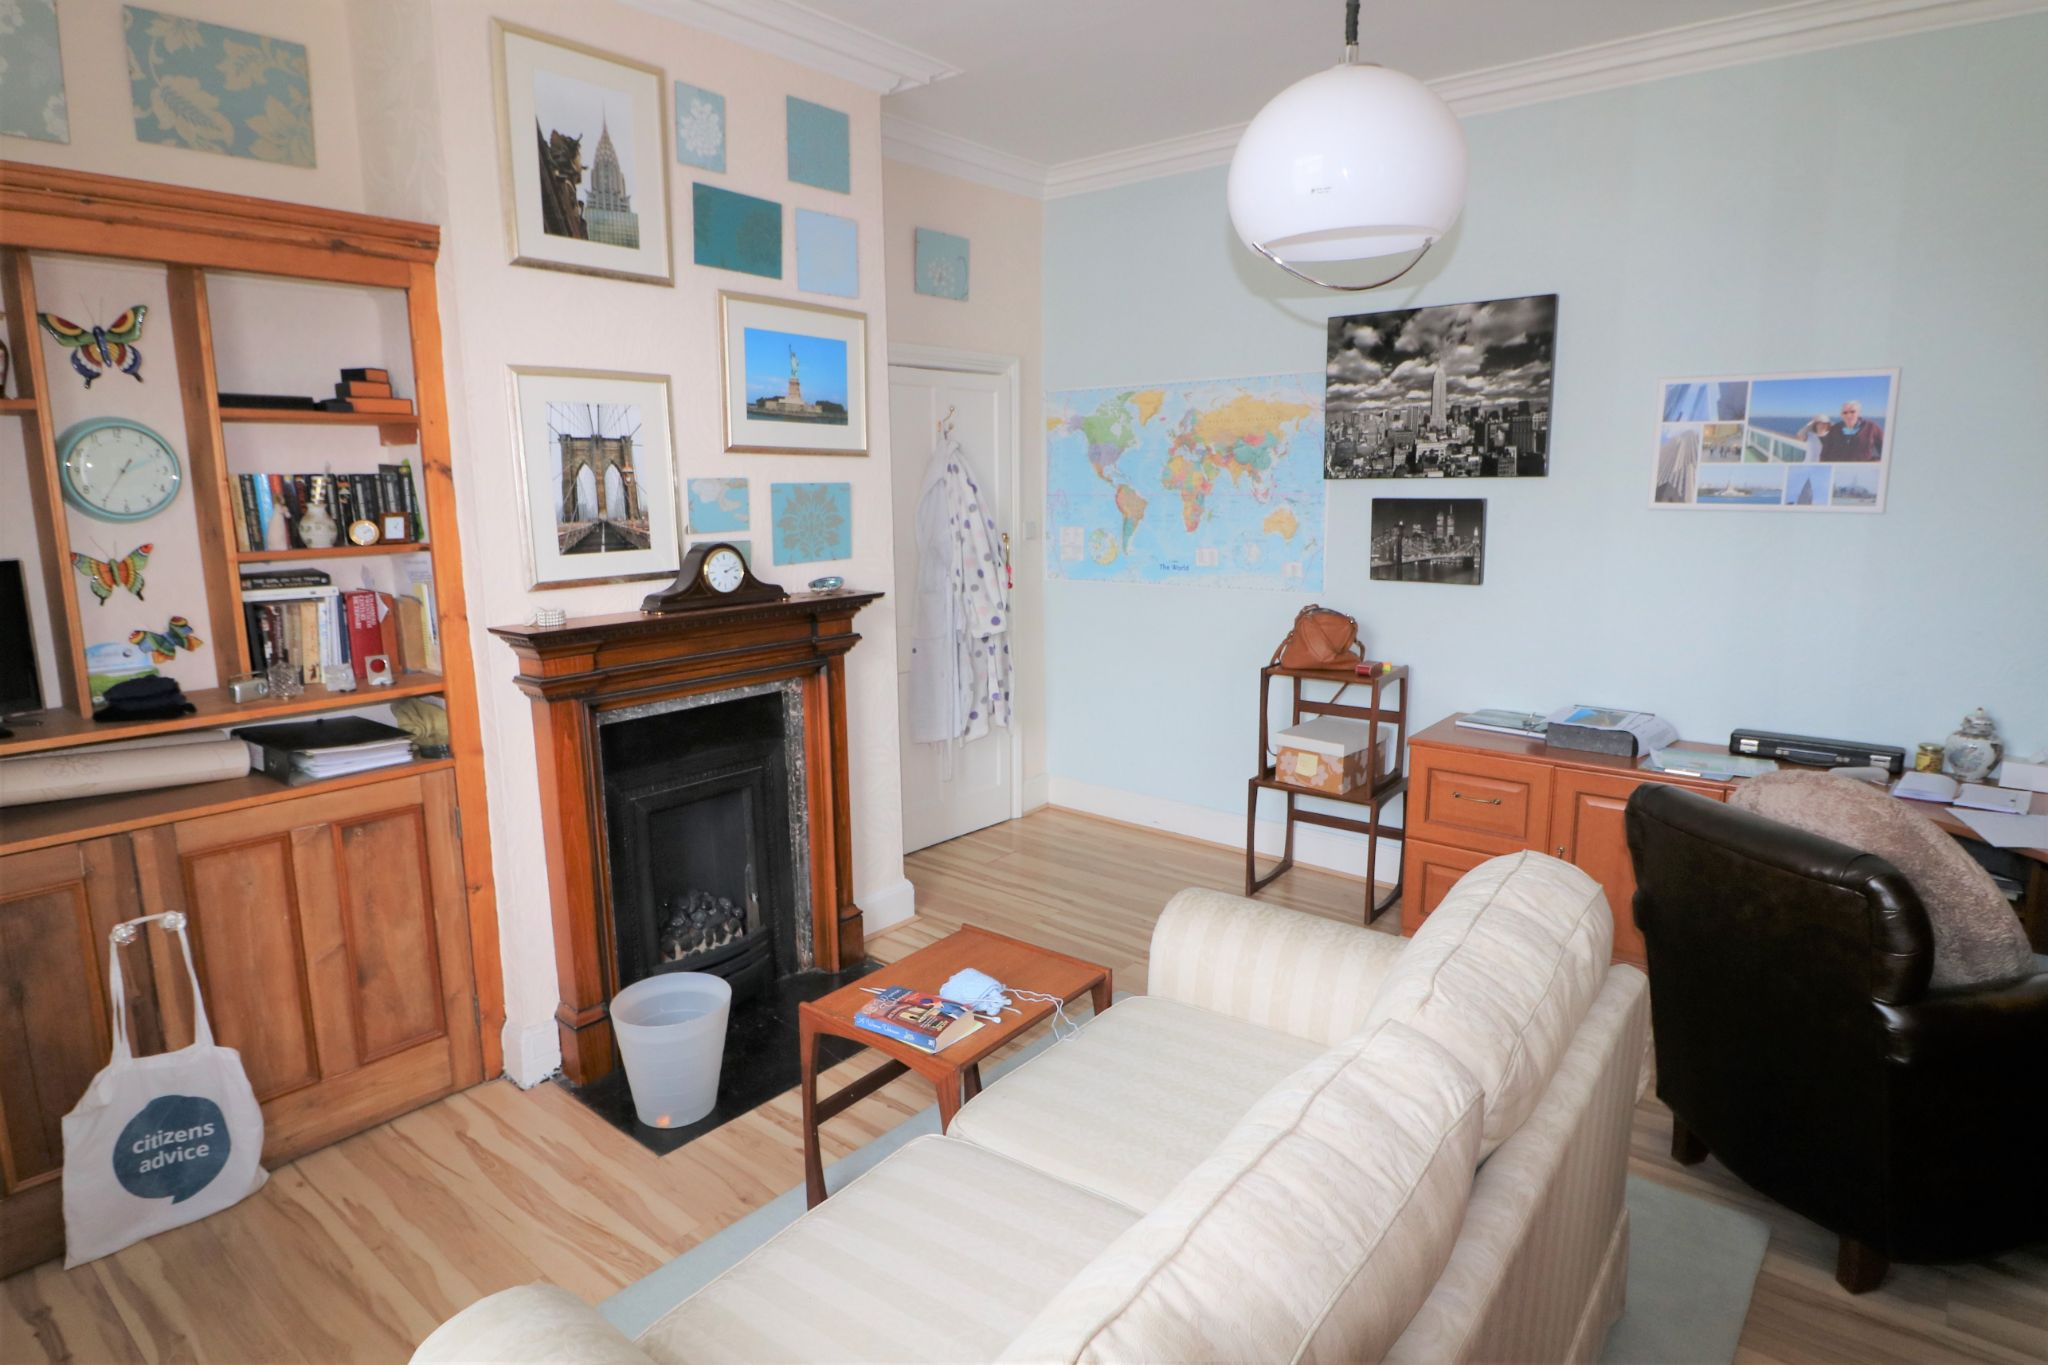 6 Bedroom Semi-detached House For Sale - Photograph 20